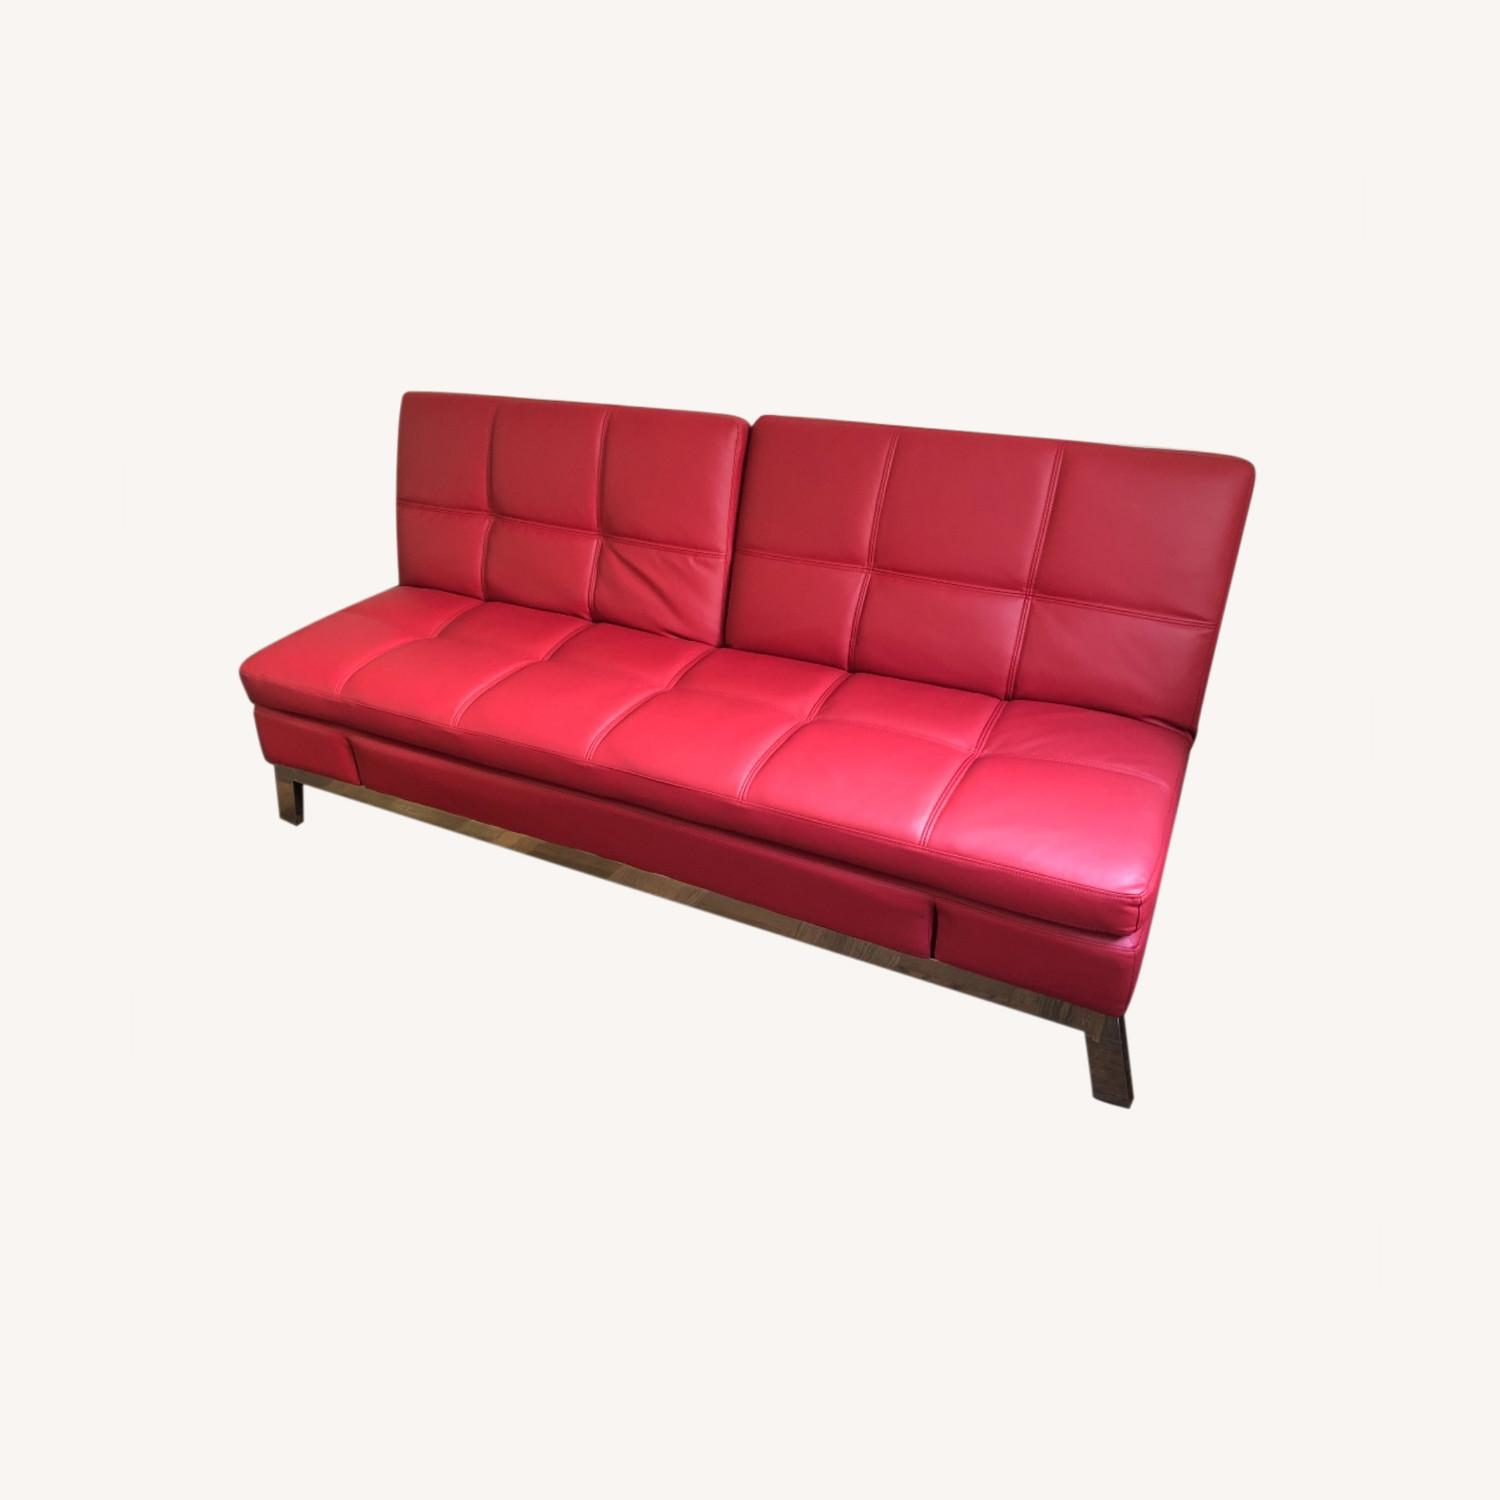 Coddle Red Leather Convertible Couch - image-0